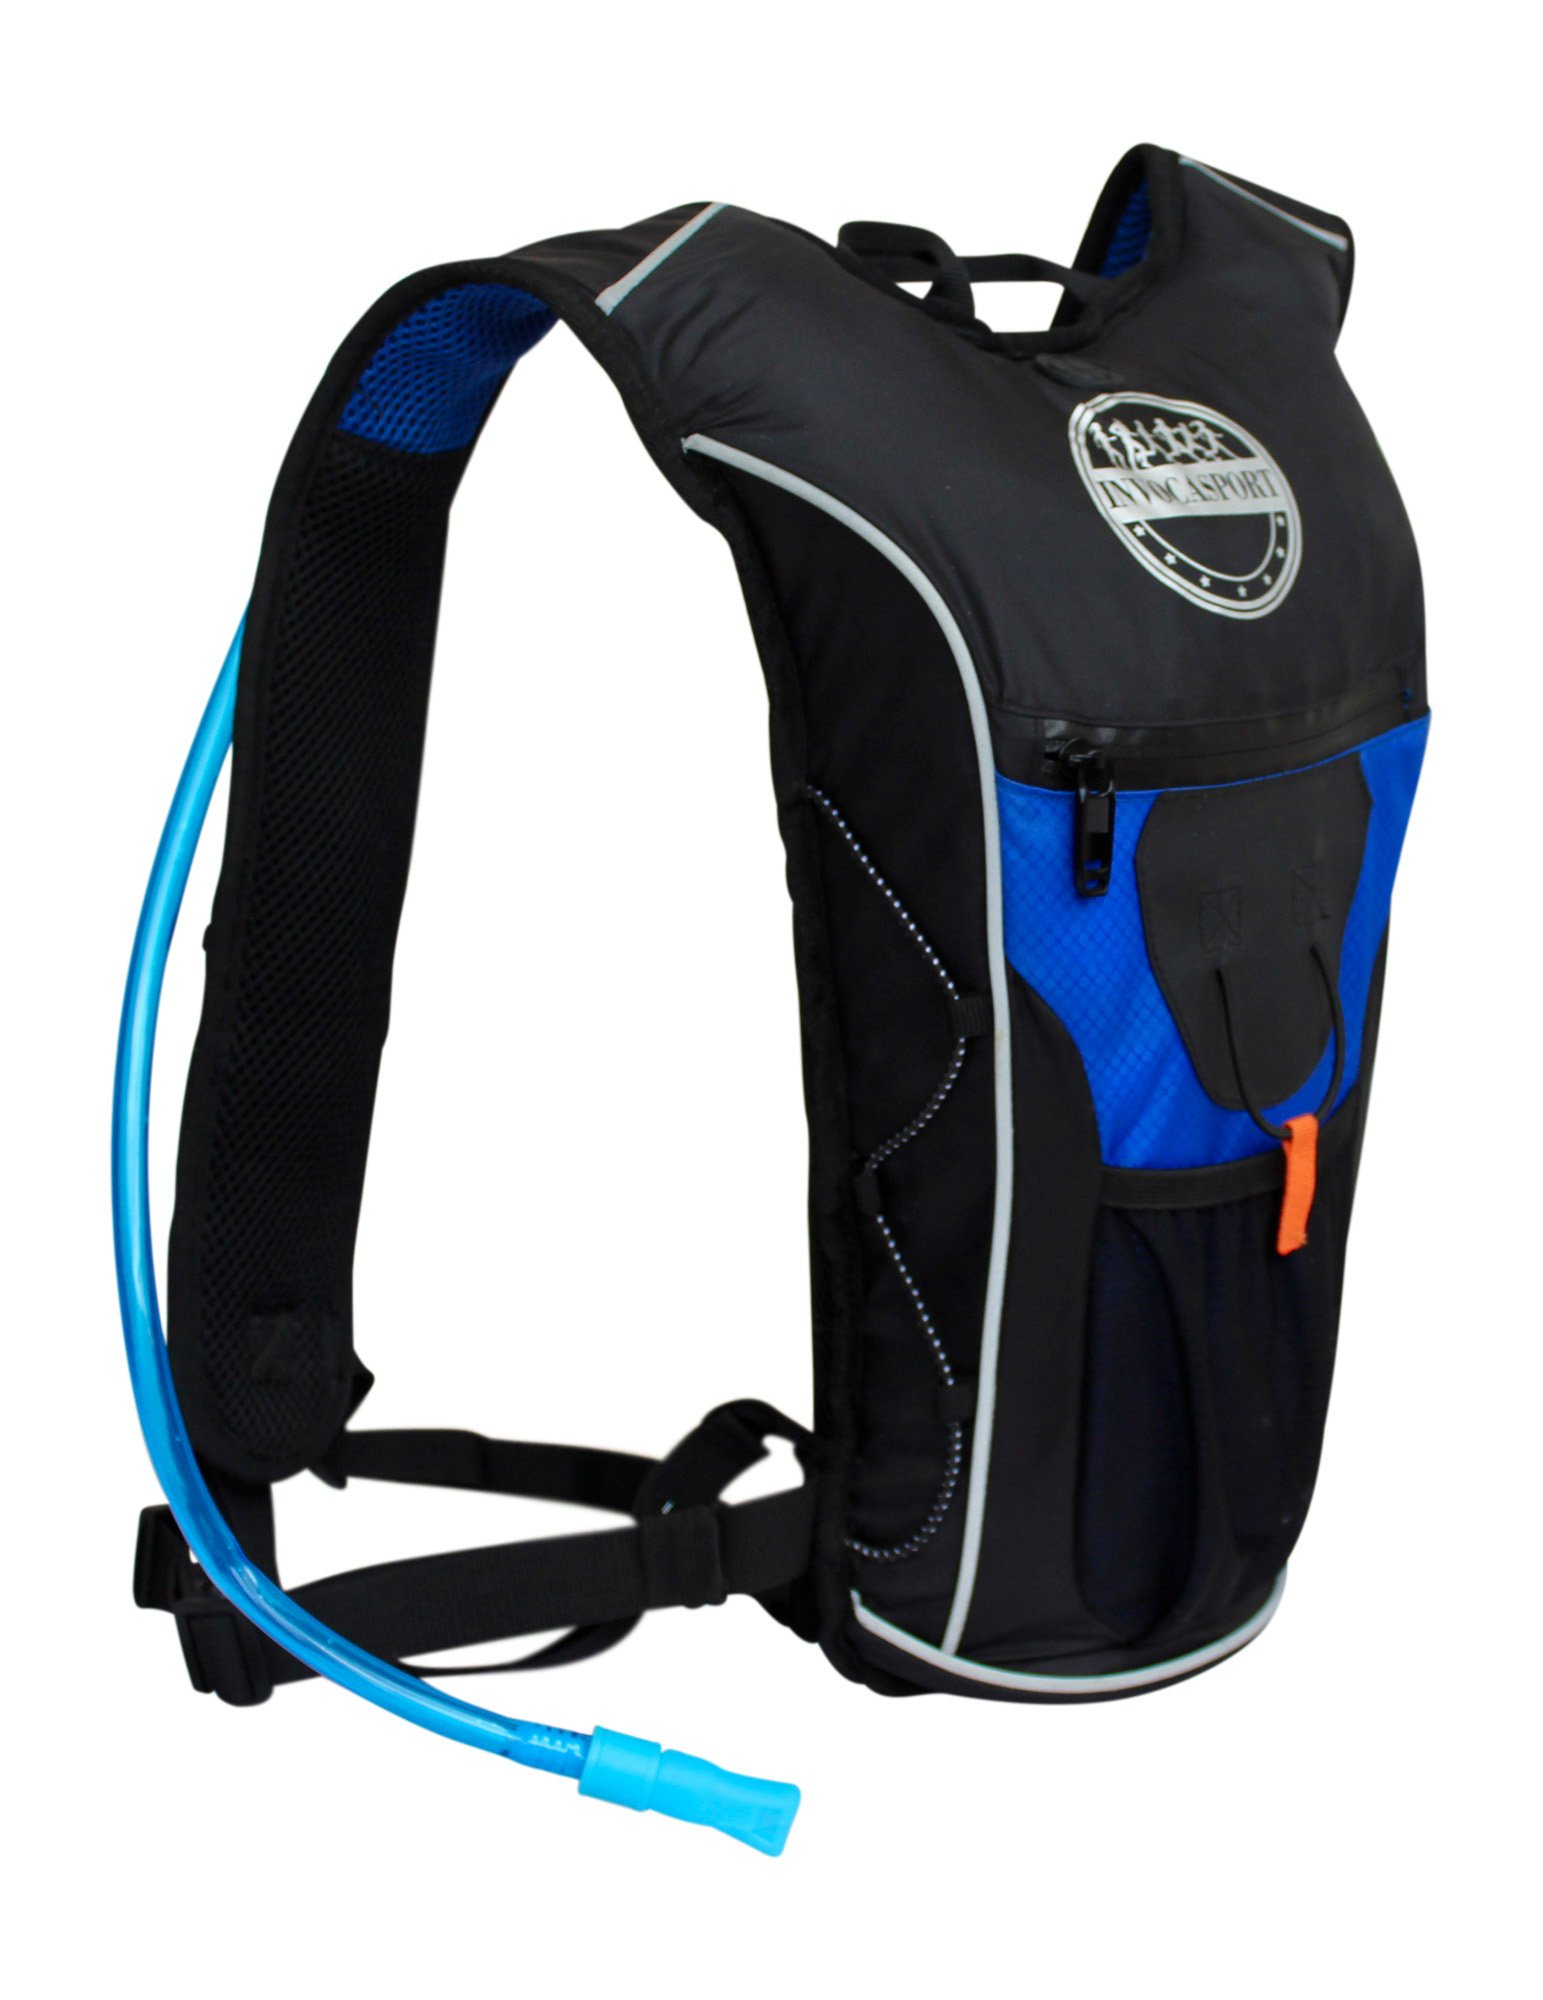 2L hydration backpack- Includes BPA Free Bladder - small Light Weight- Perfect for Running Cycling Hiking or any Outdoor Sports - Provides Ultimate Comfort for Women and Men